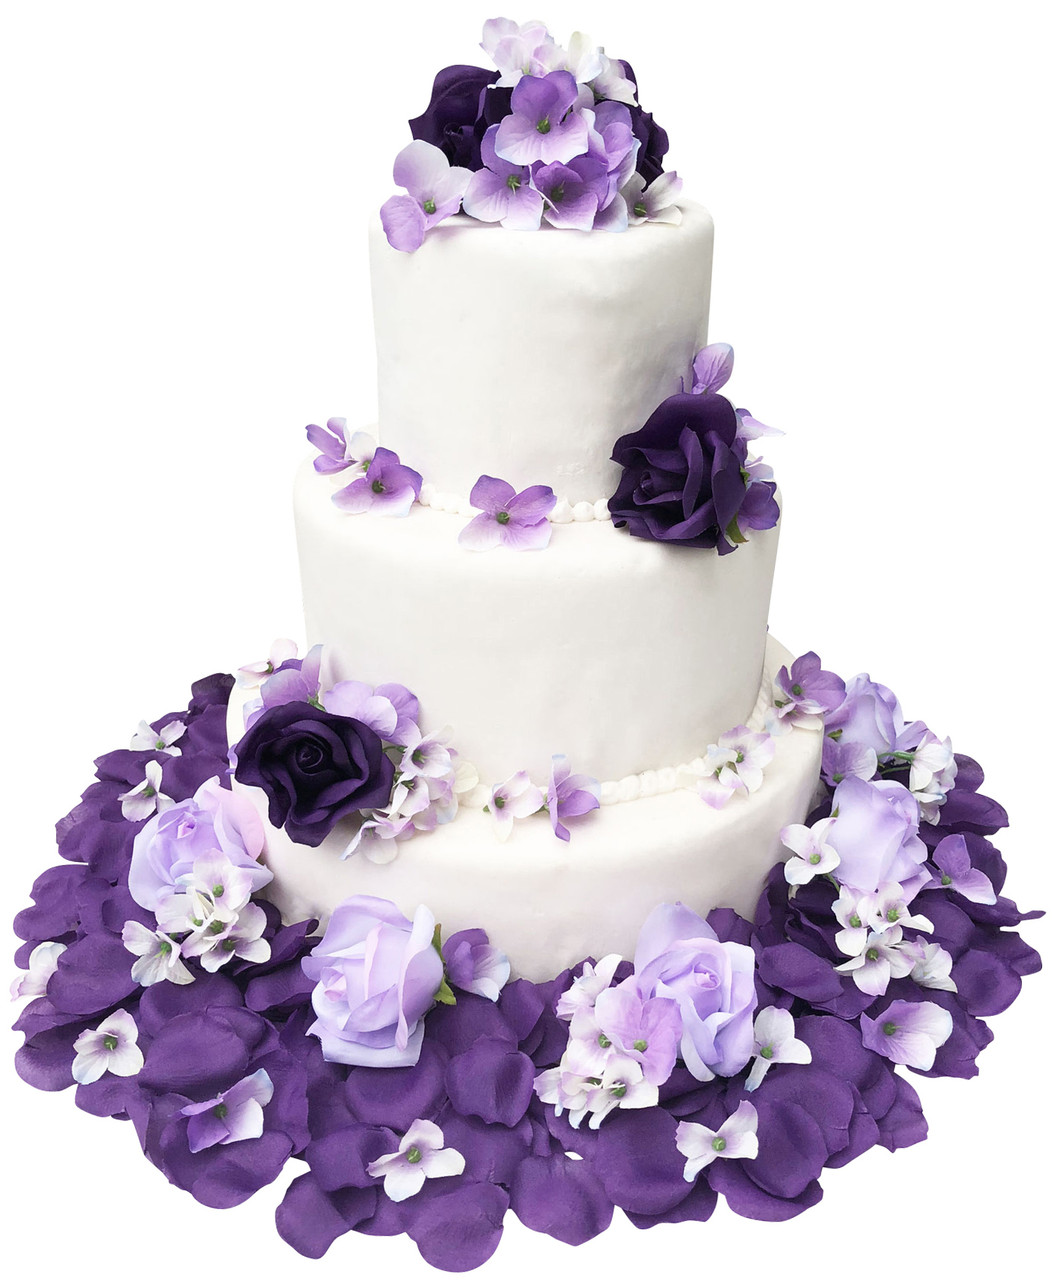 Purple Wedding Cake Ideas: Purple Lavender Rose & Hydrangea Rose Flower Cake Toppers